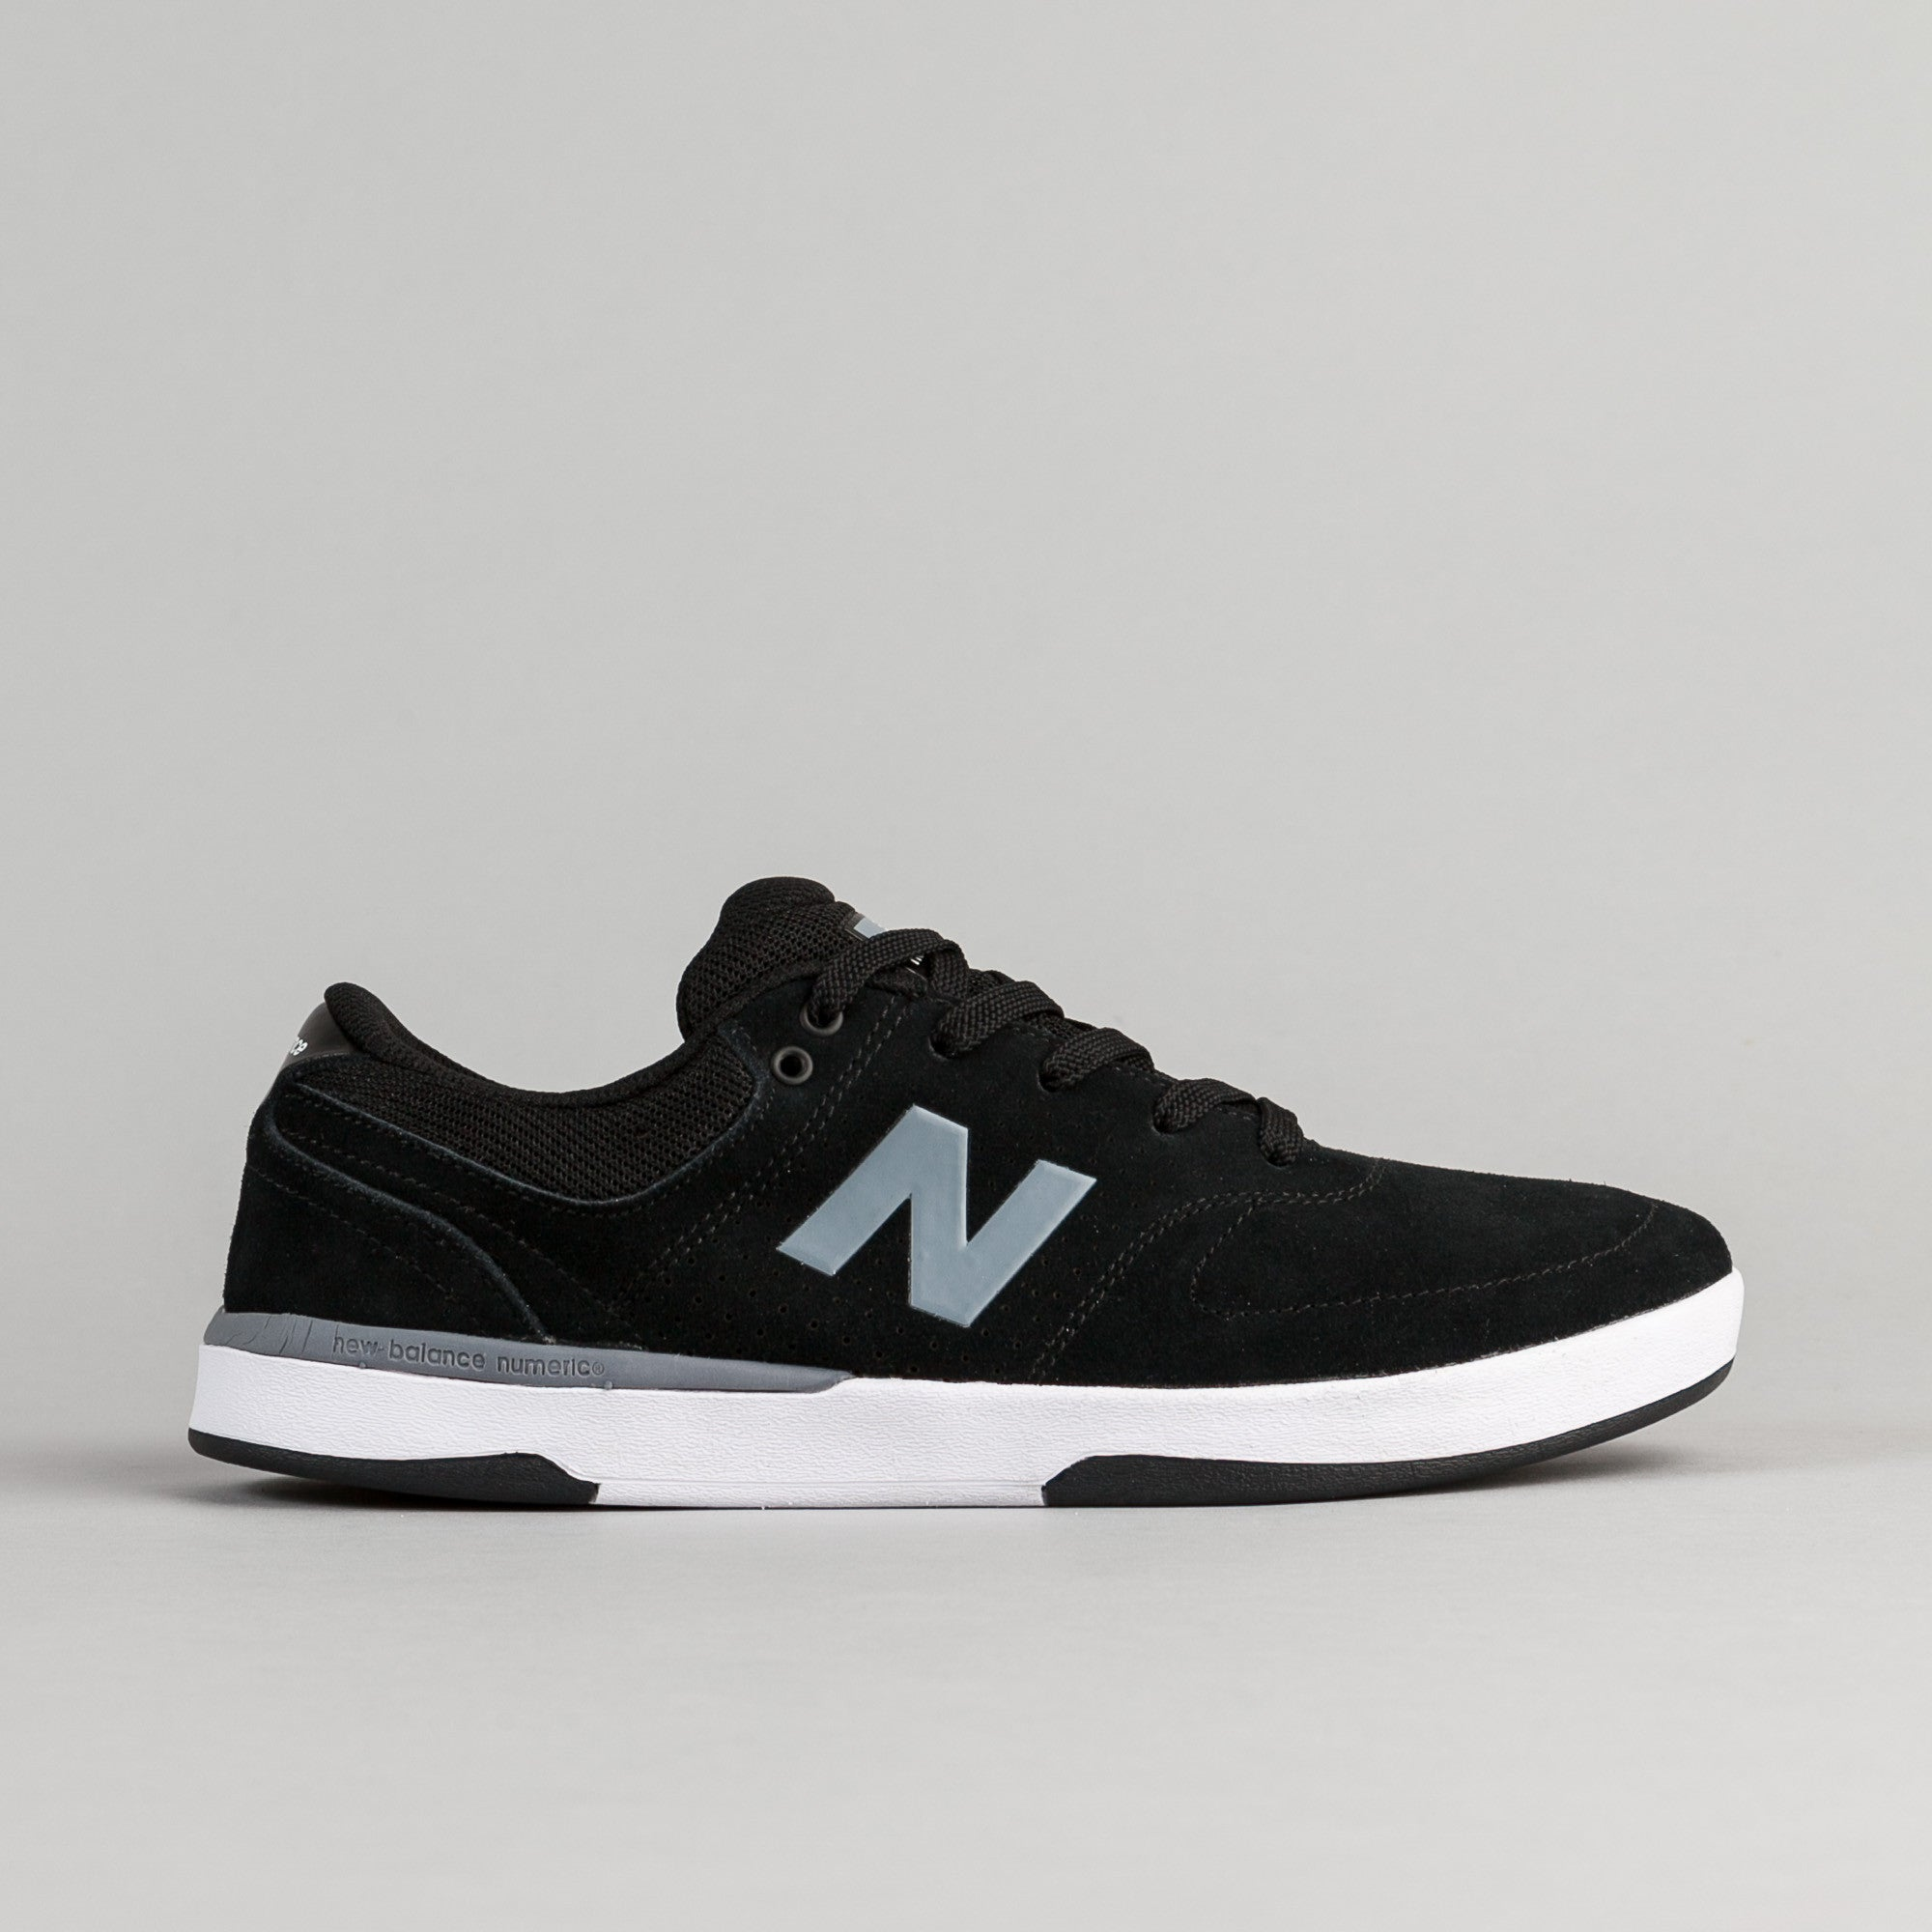 New Balance Numeric PJ Stratford 533 Shoes - Black / Grey / White